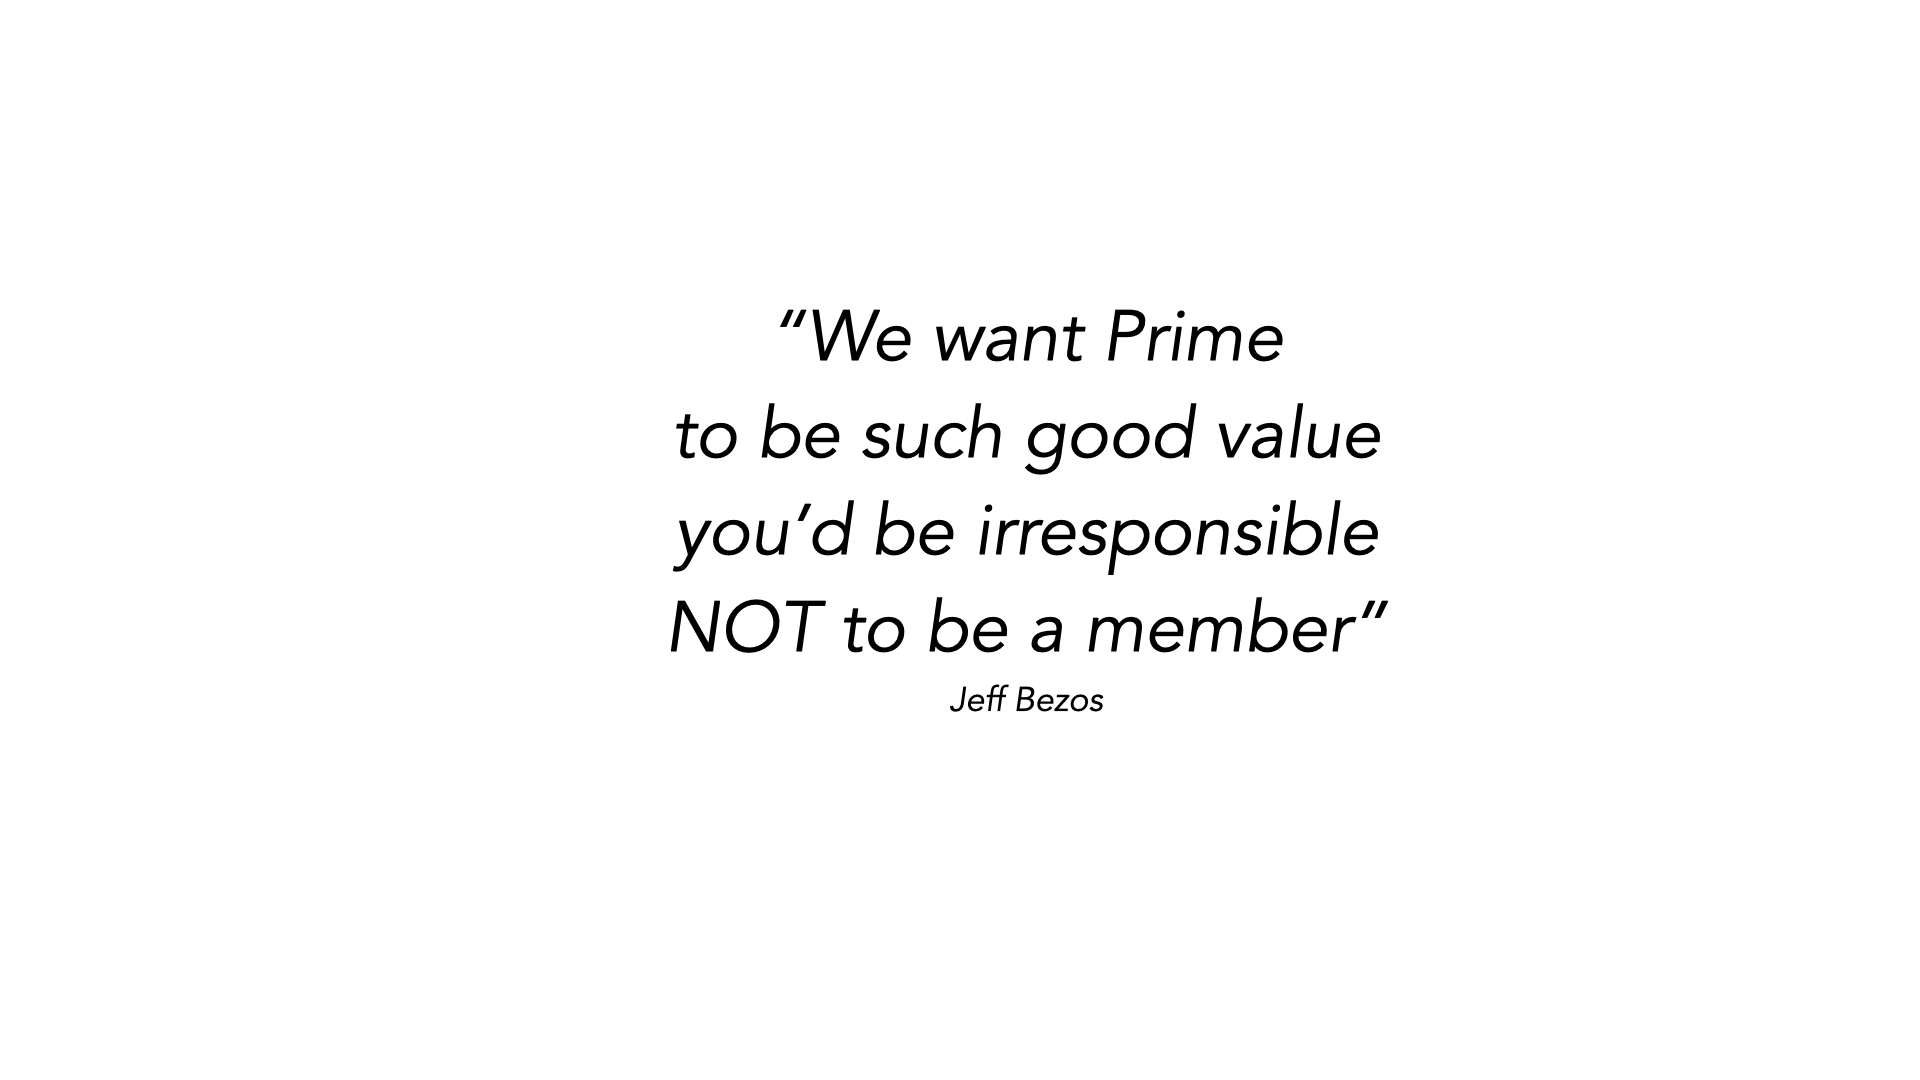 The powerful promise of Amazon Prime